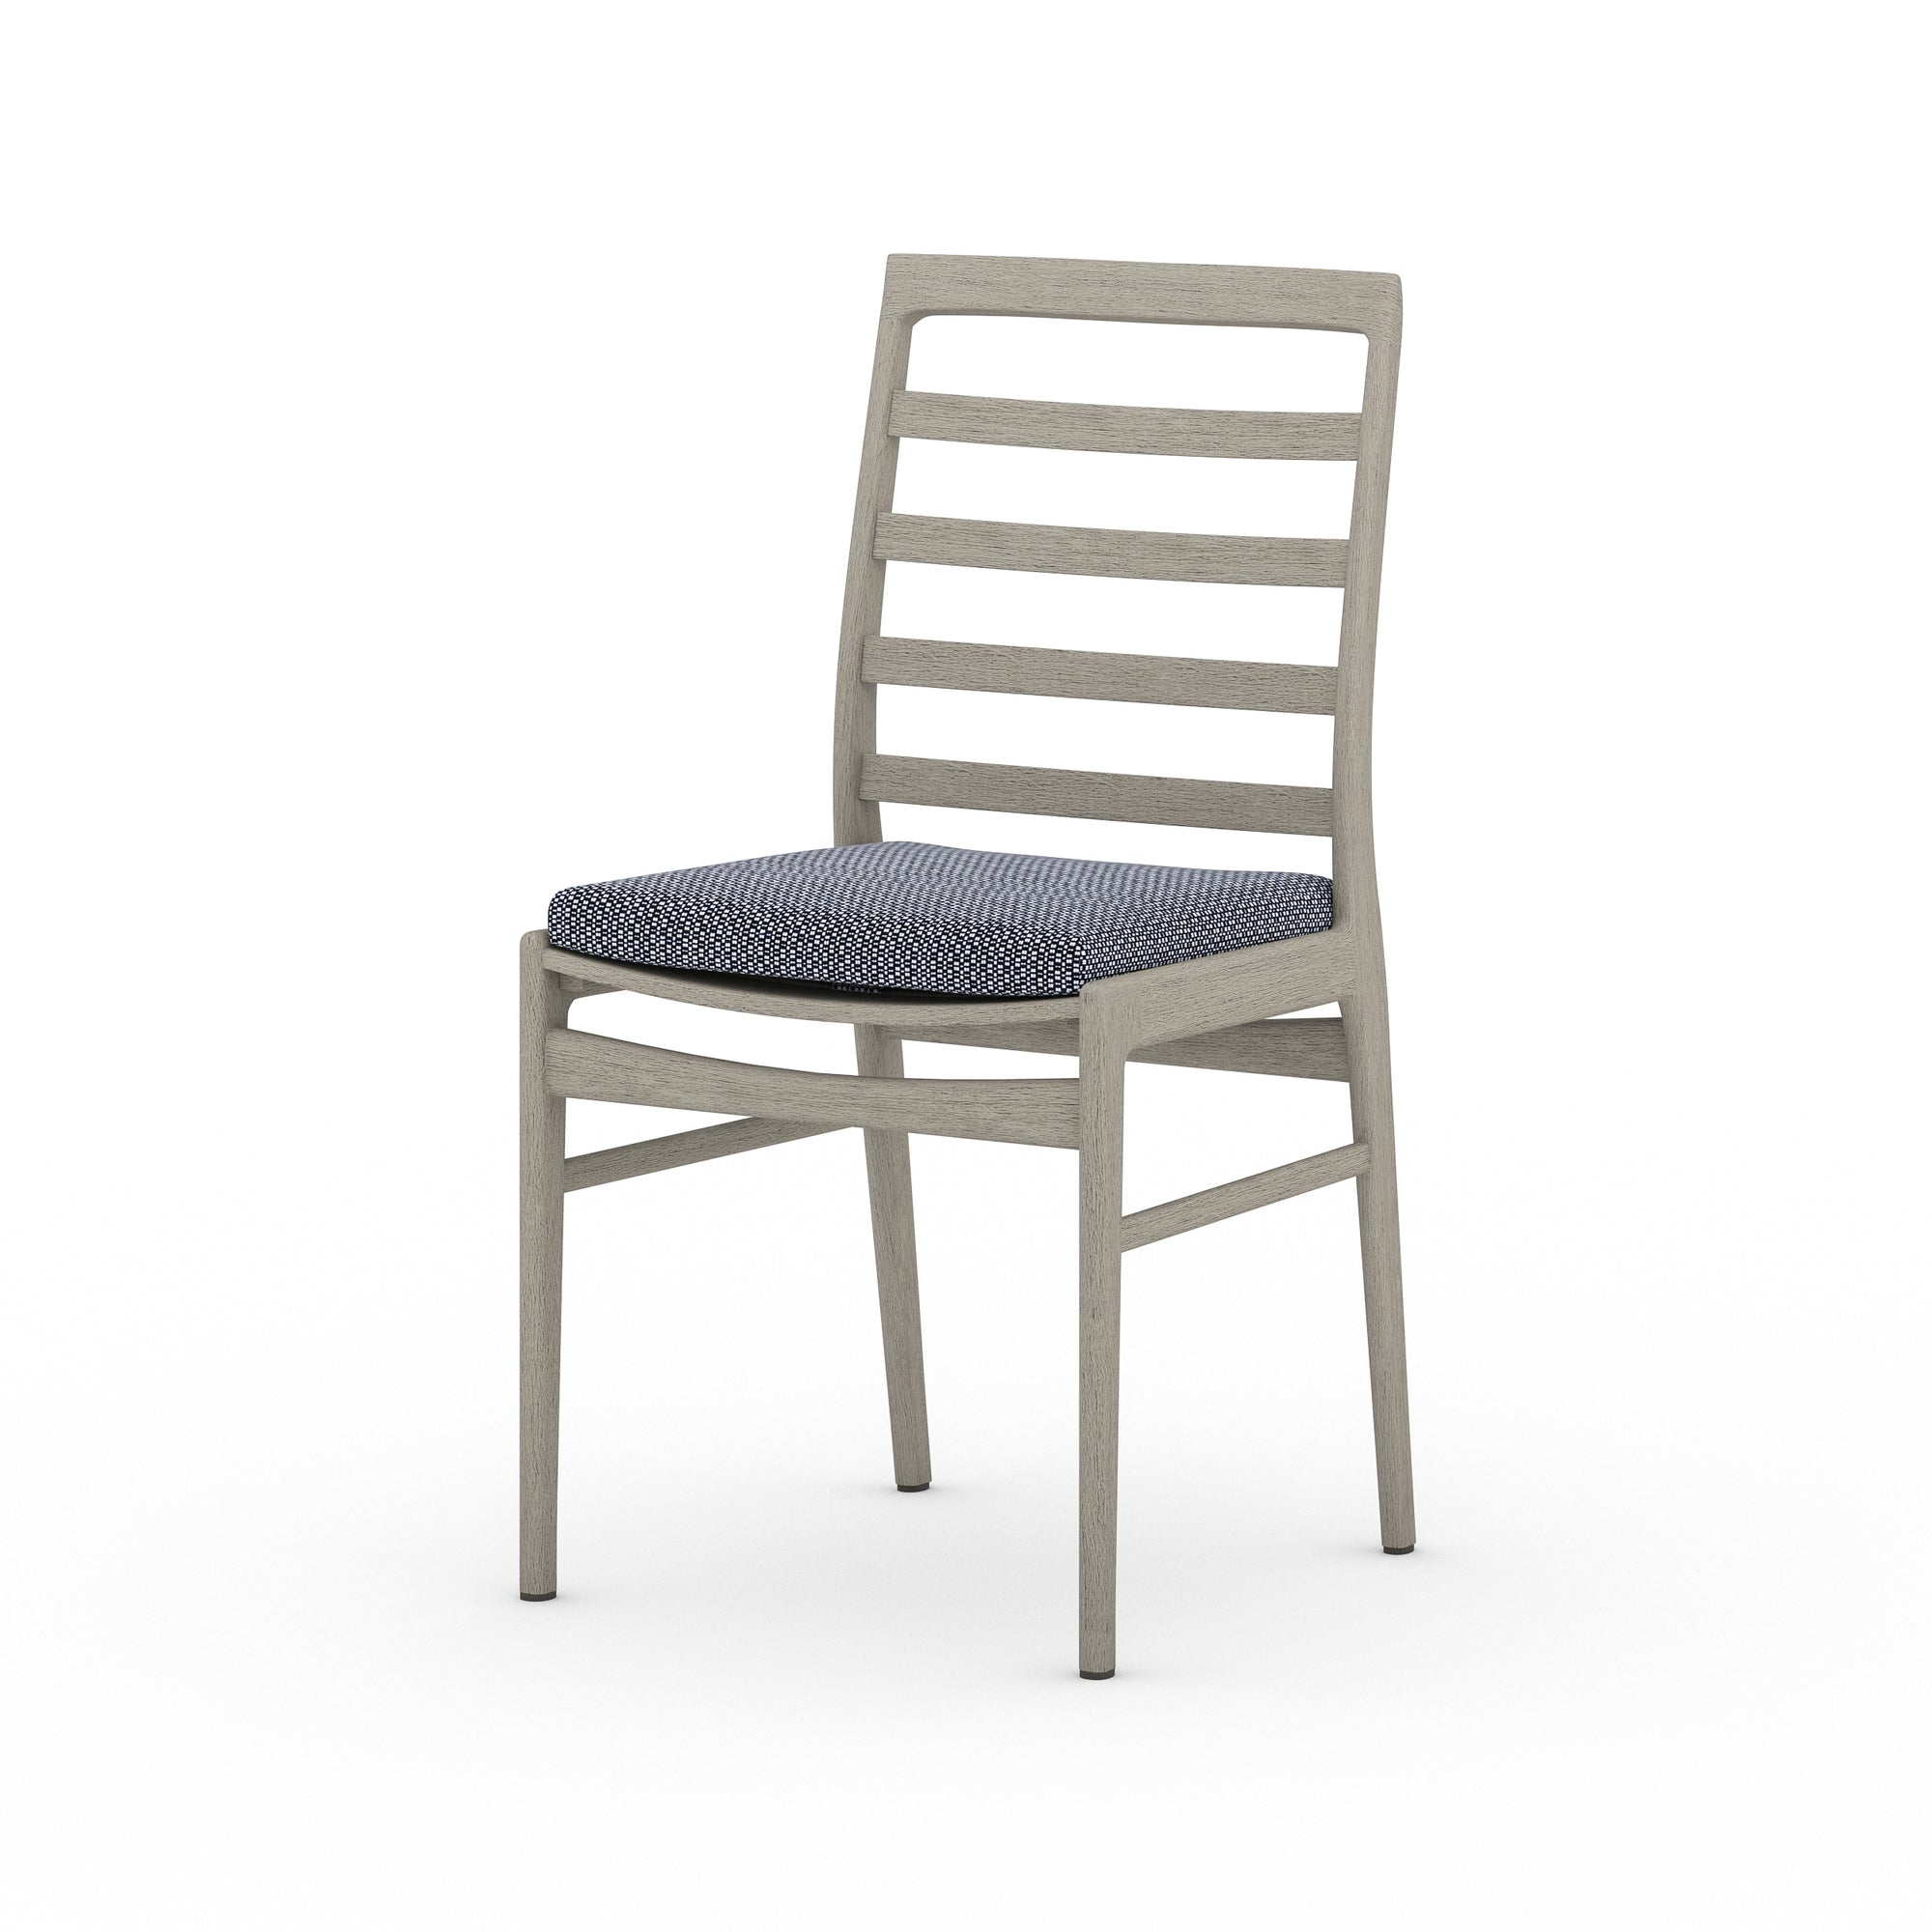 Linnet Outdoor Dining Chair - Grey/Navy